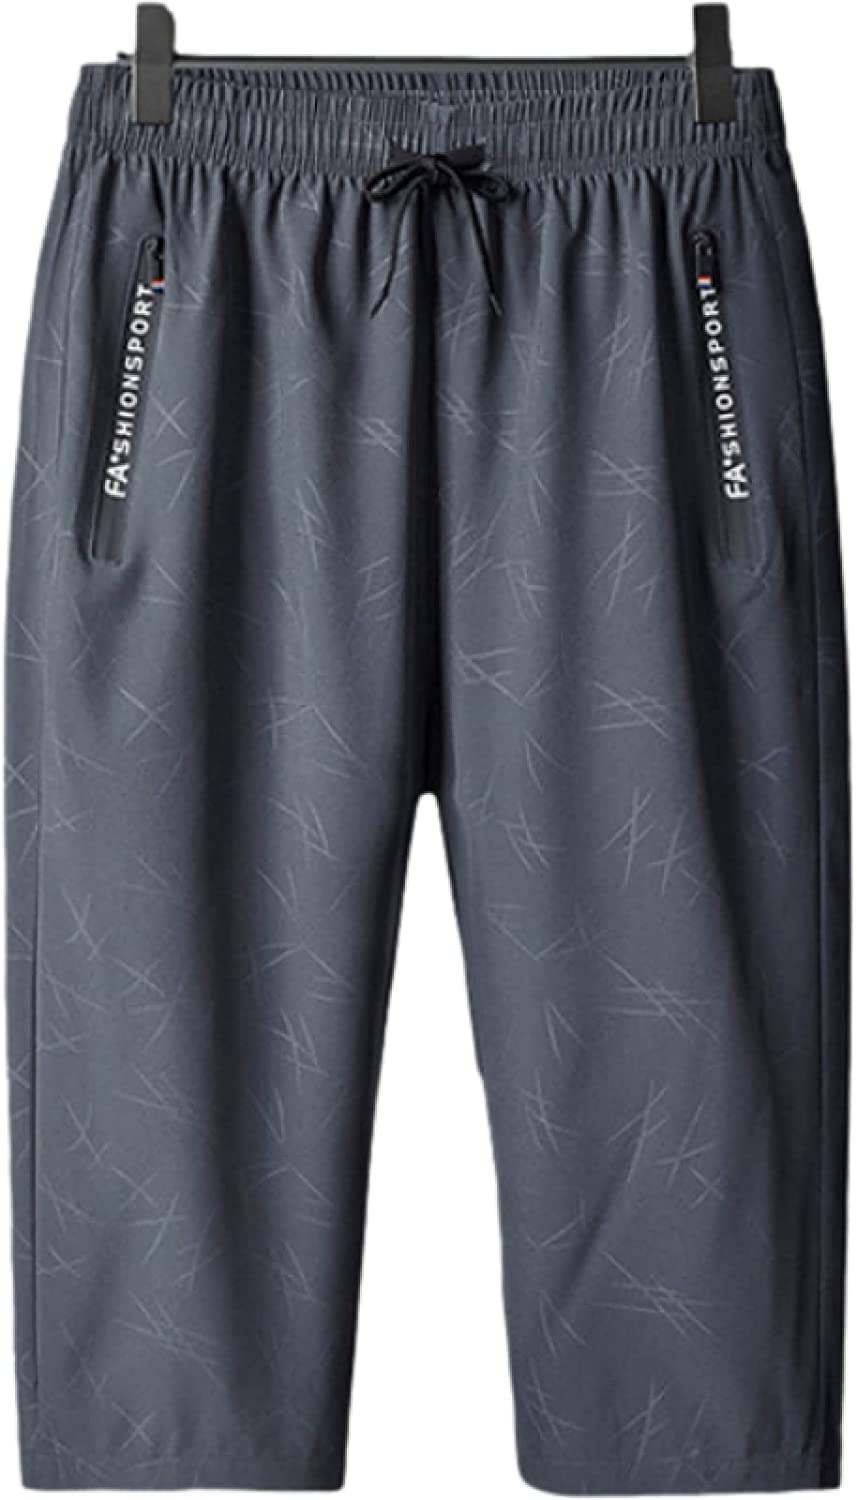 Segindy Men's Casual Shorts Summer Fashion Comfortable Sweat-Absorbent Breathable Large